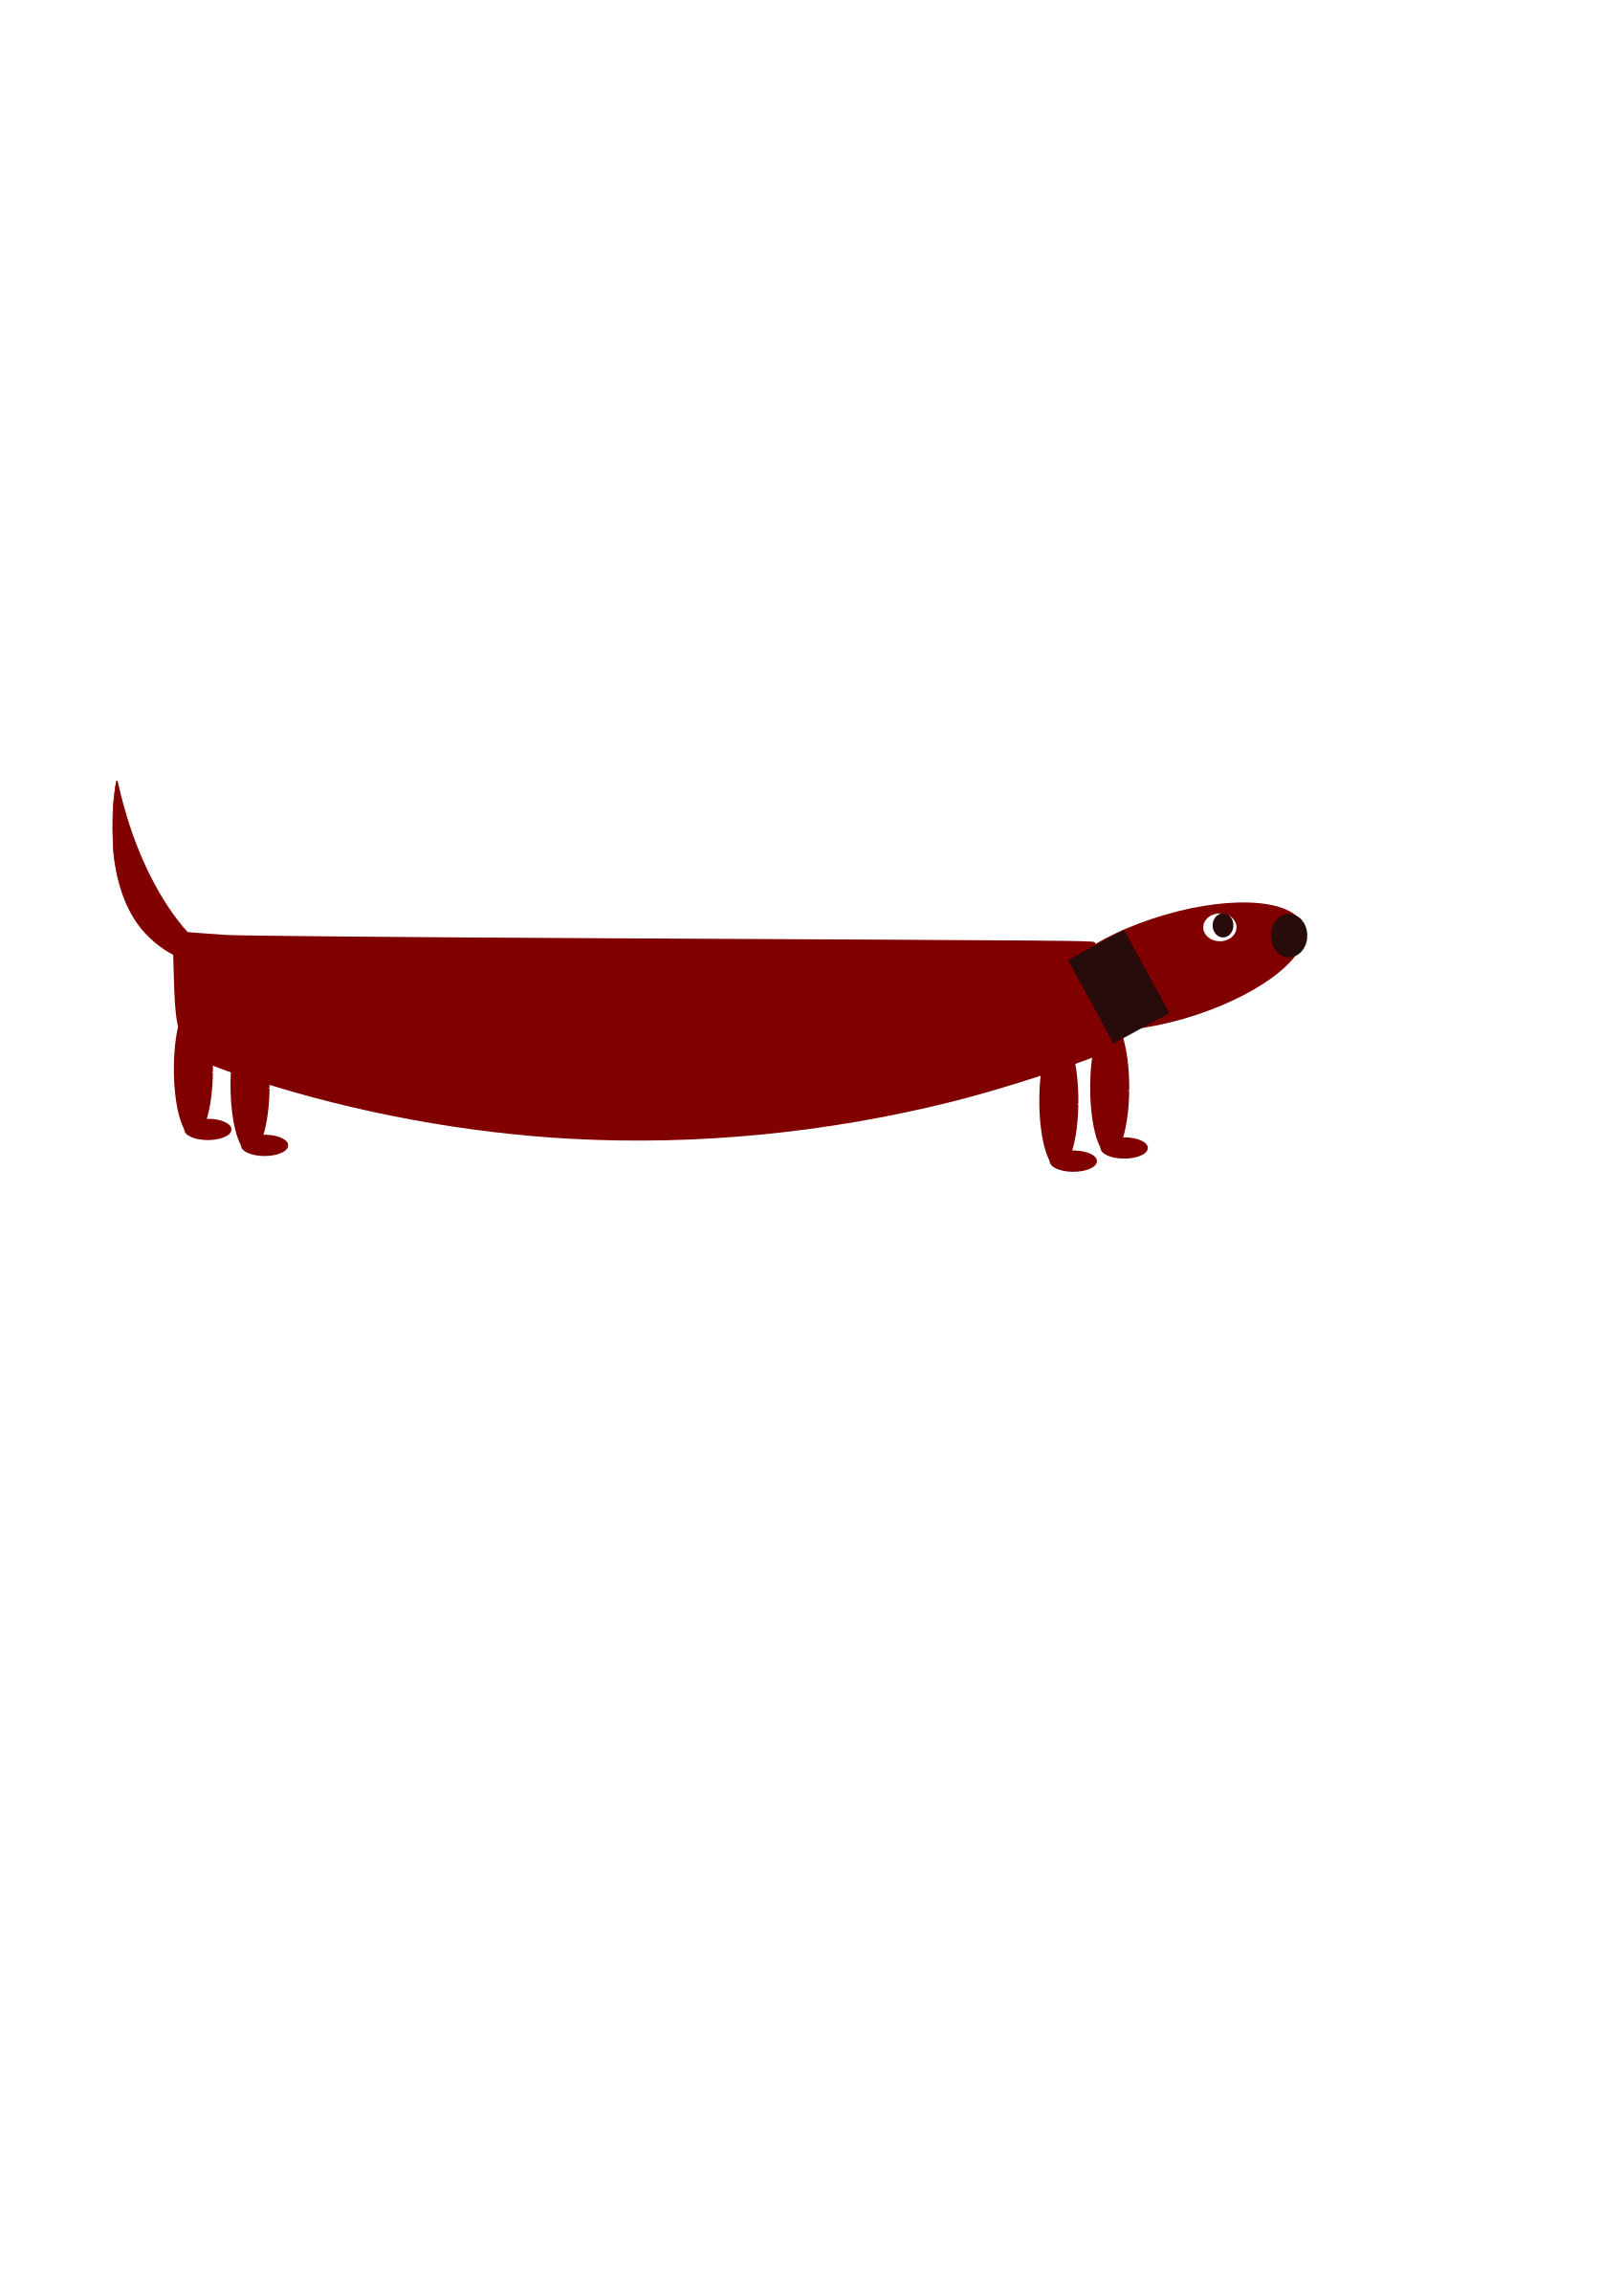 Sausage dog by sonichedgehog